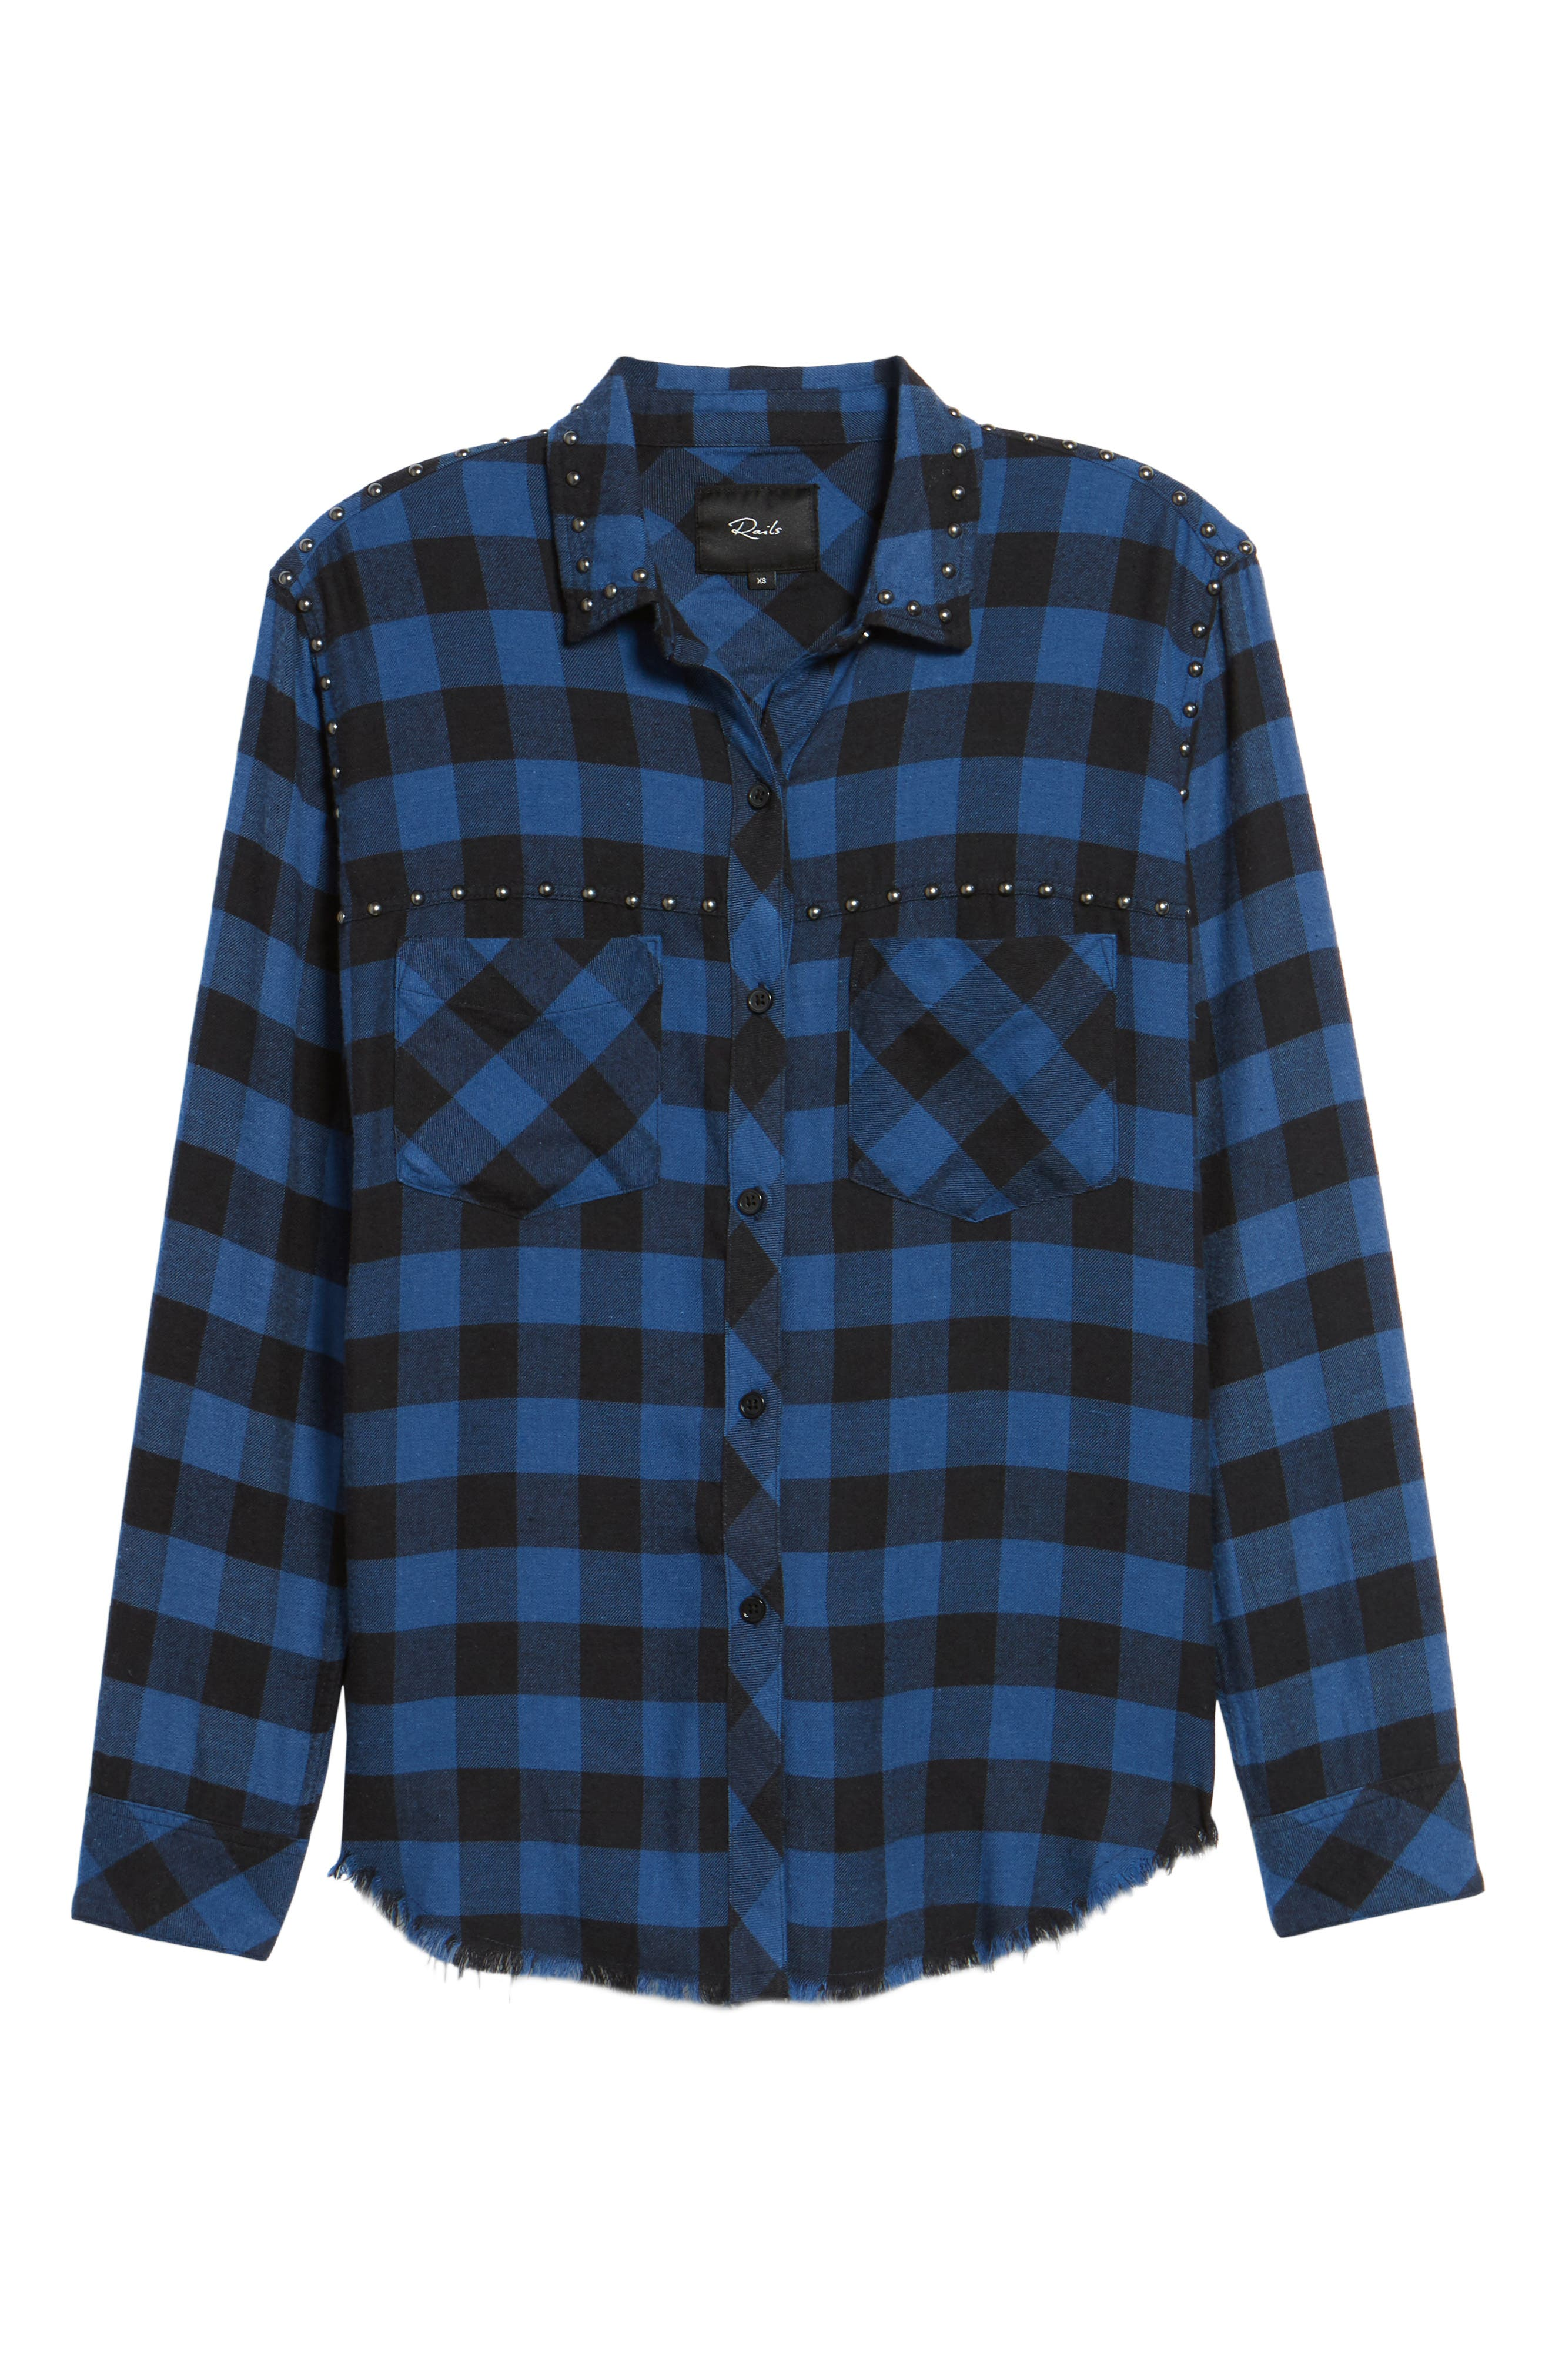 Rex Studded Flannel Shirt,                             Alternate thumbnail 7, color,                             Blue/ Black Check